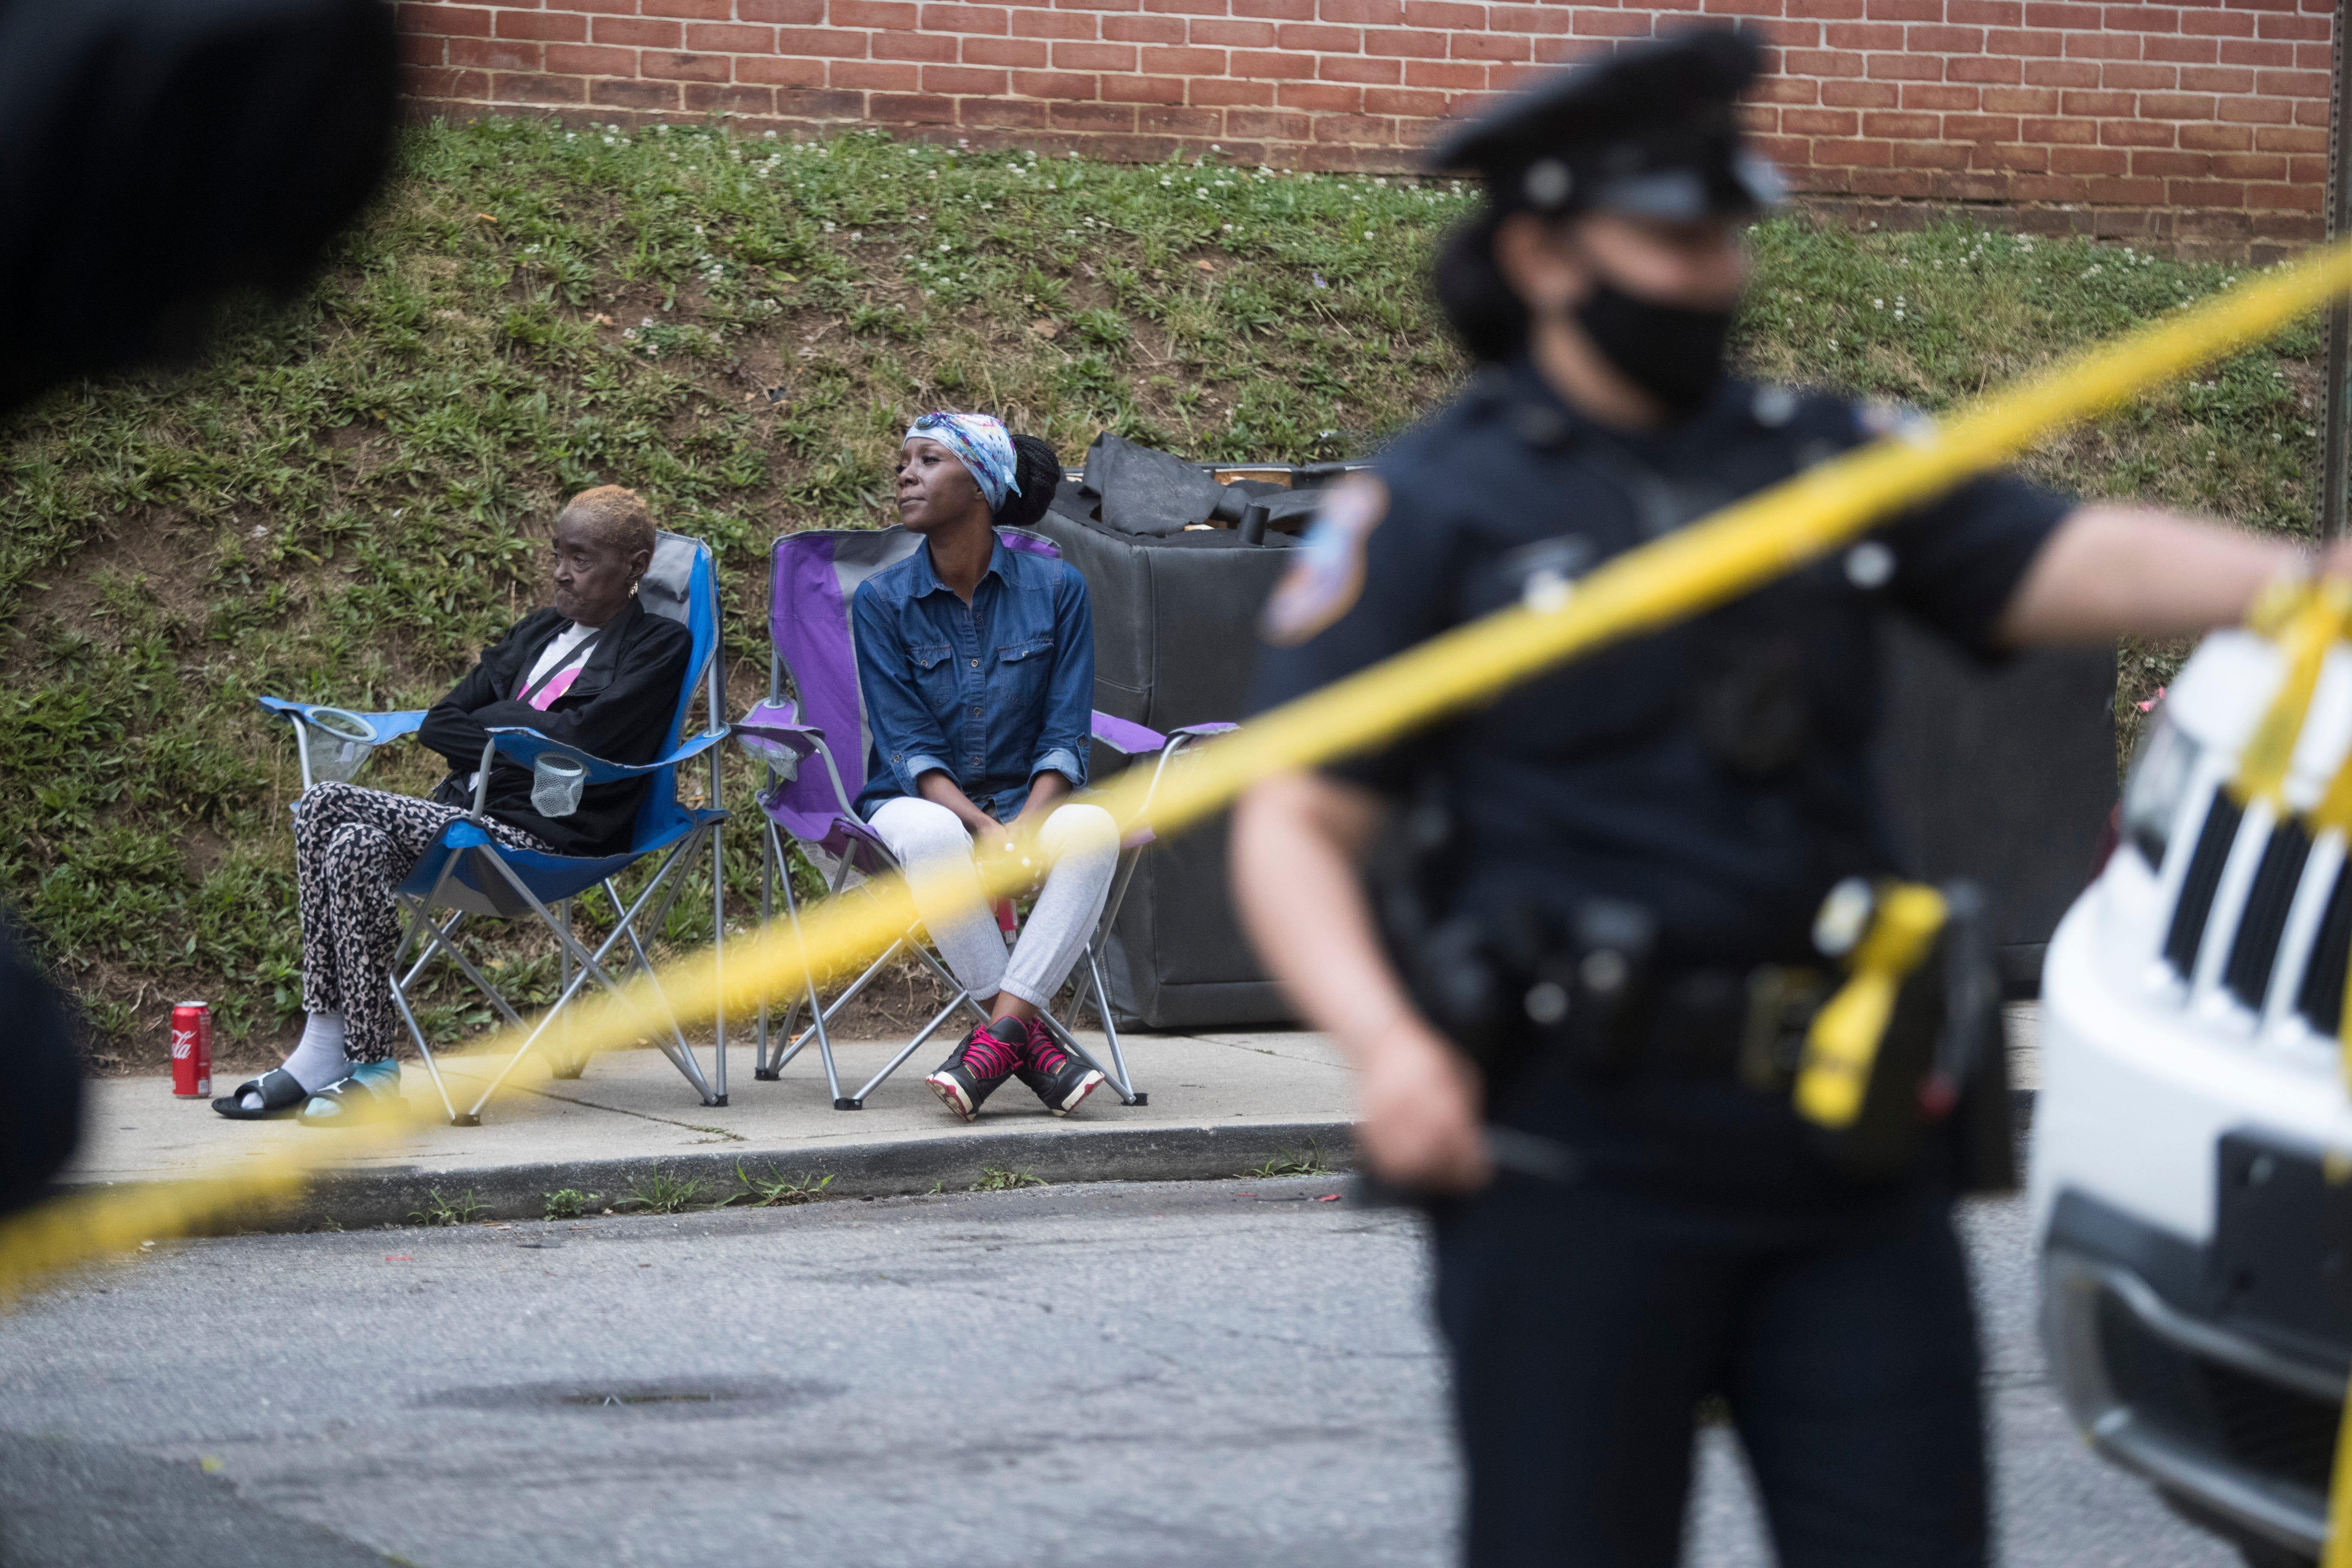 In Wilmington's North Market Street community, violence, trauma mix with hopes for better